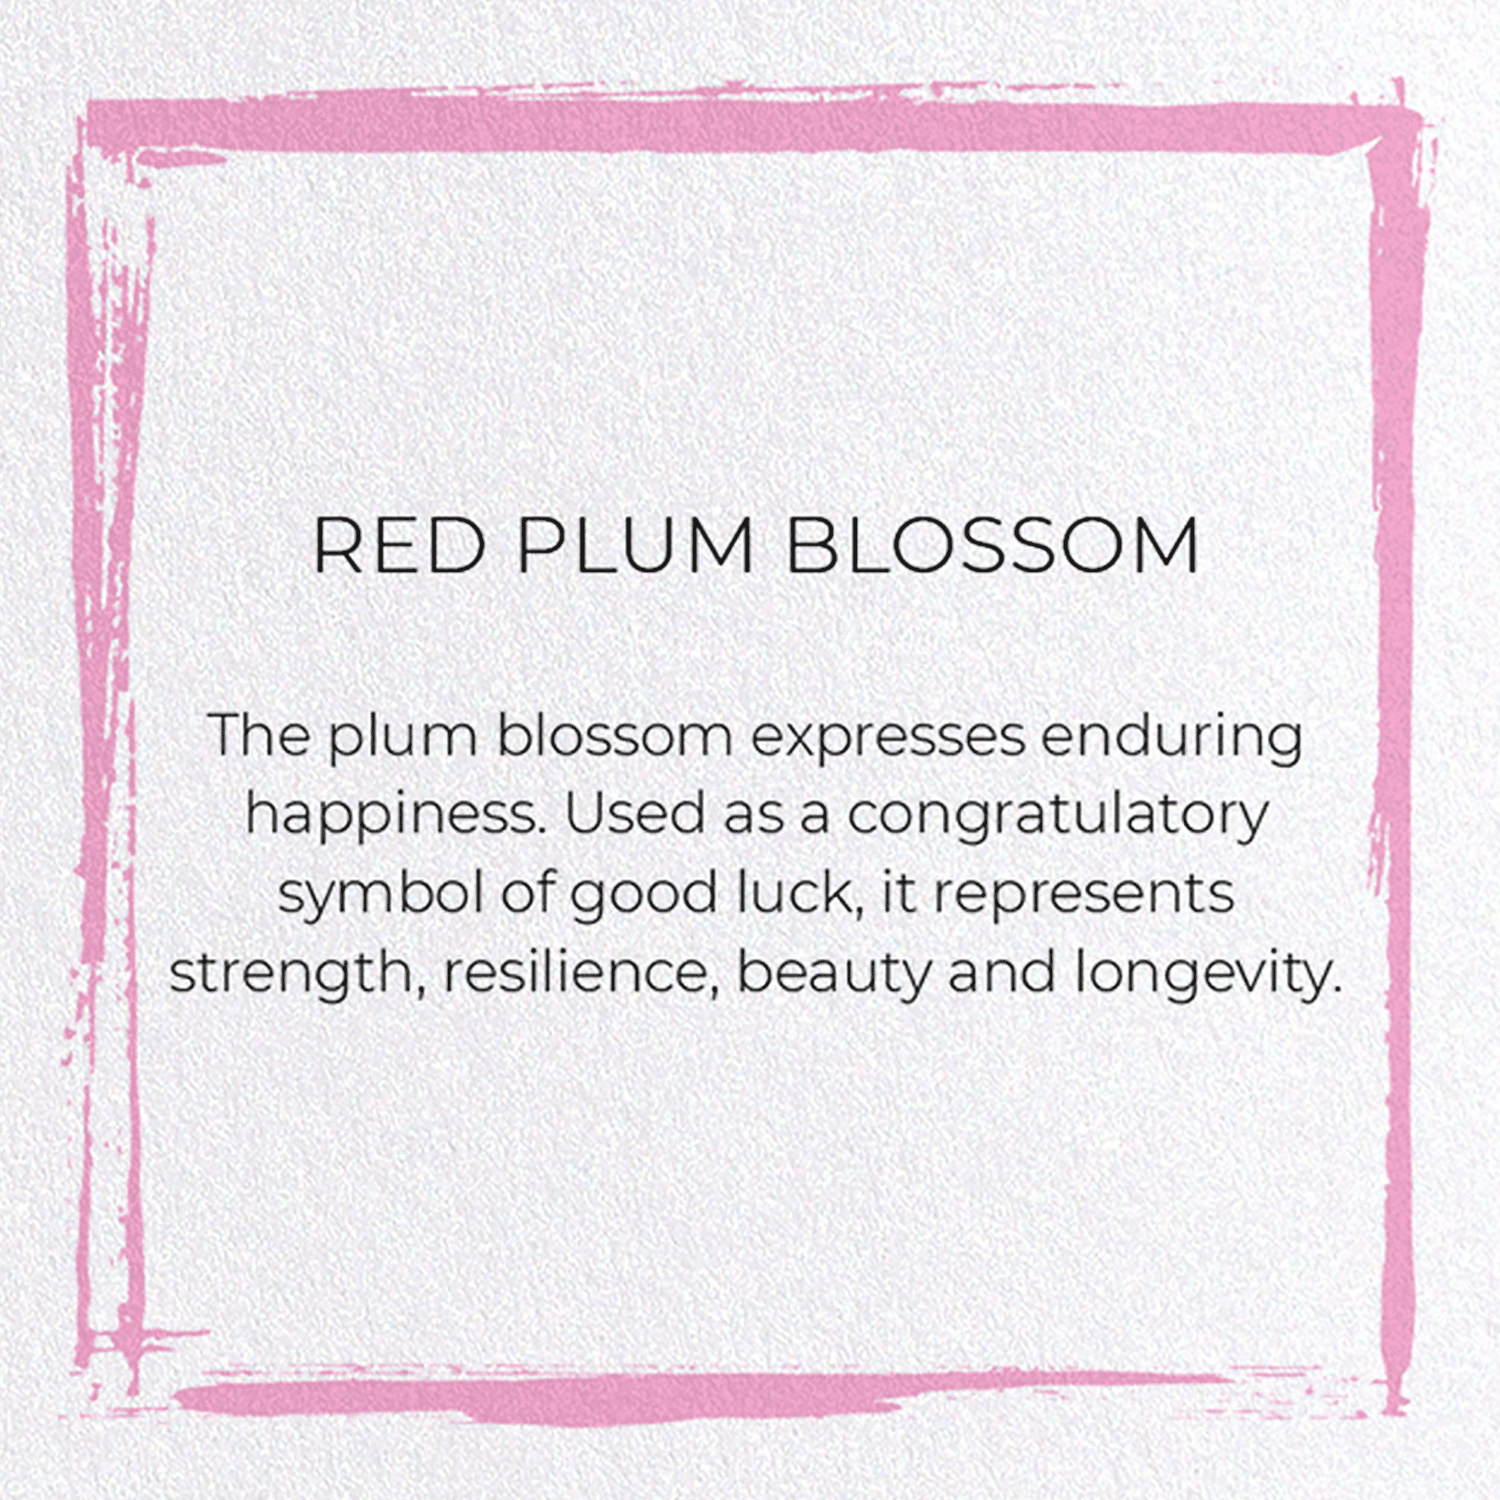 RED PLUM BLOSSOM: 8xCards